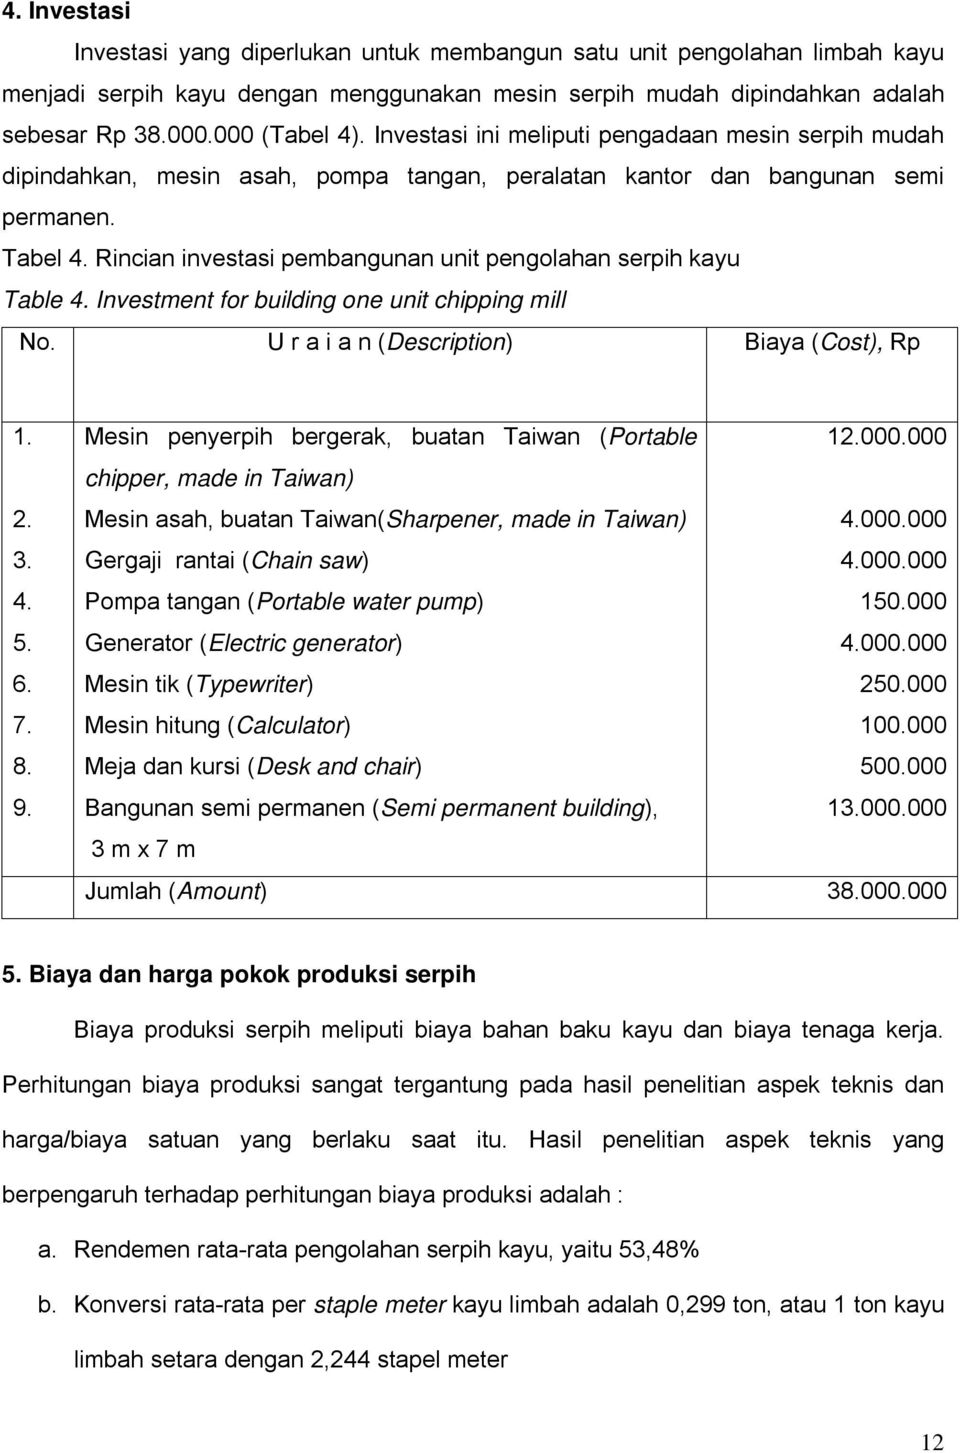 Rincian investasi pembangunan unit pengolahan serpih kayu Table 4. Investment for building one unit chipping mill No. U r a i a n (Description) Biaya (Cost), Rp 1. 2. 3. 4. 5. 6. 7. 8. 9.